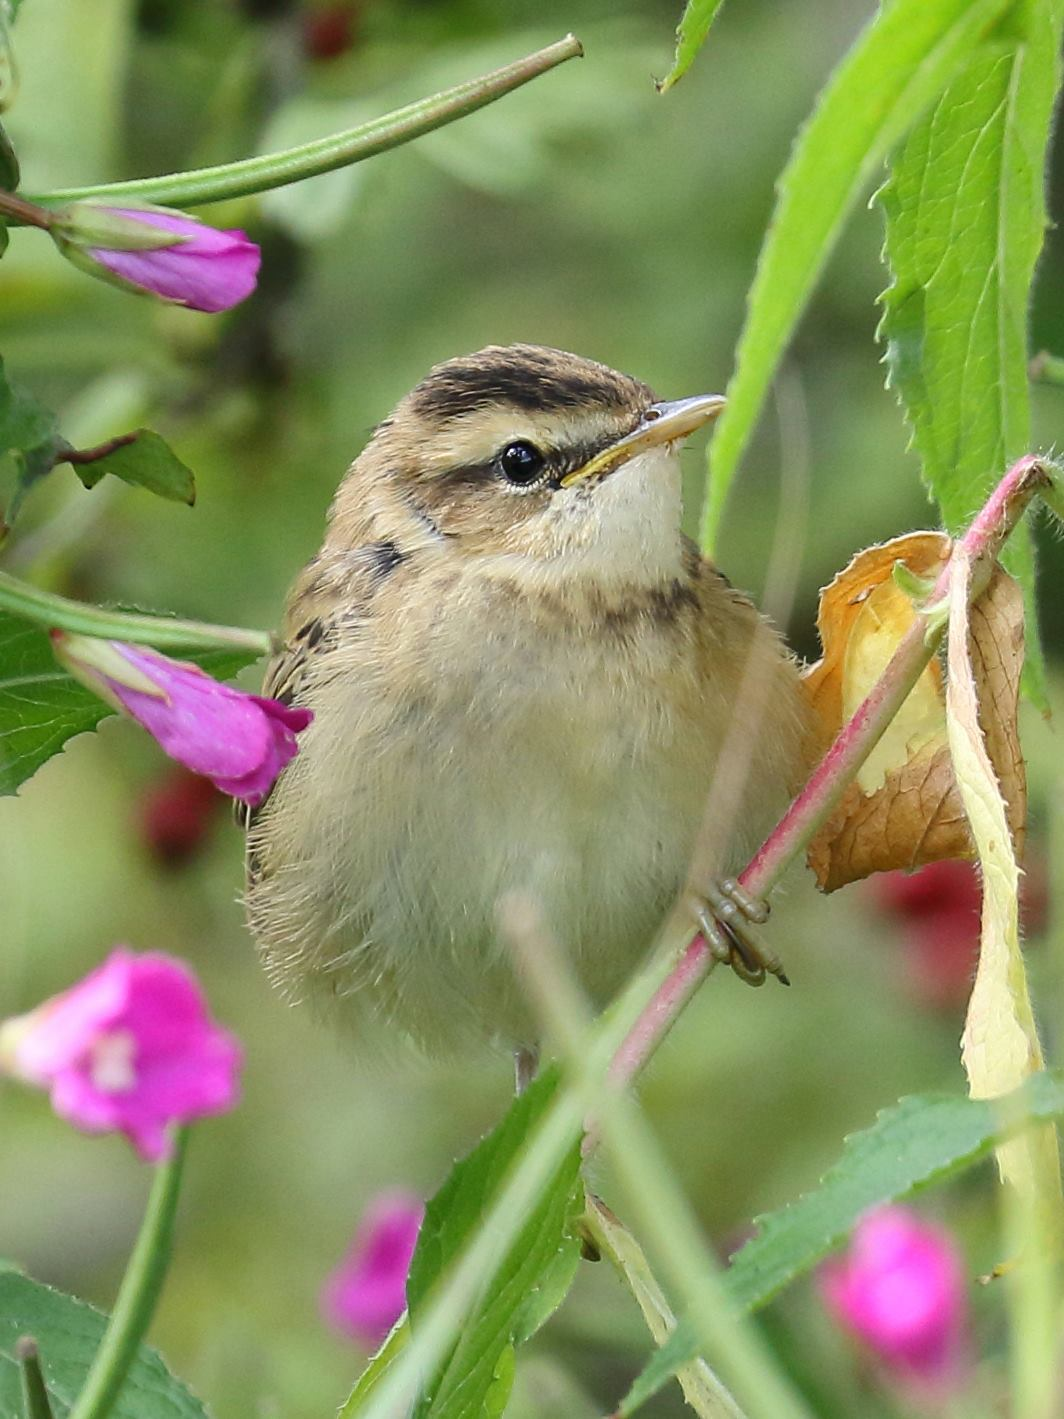 Young Sedge warbler in the Reedbed on Sun 30 July photographed by Mike Jerome.